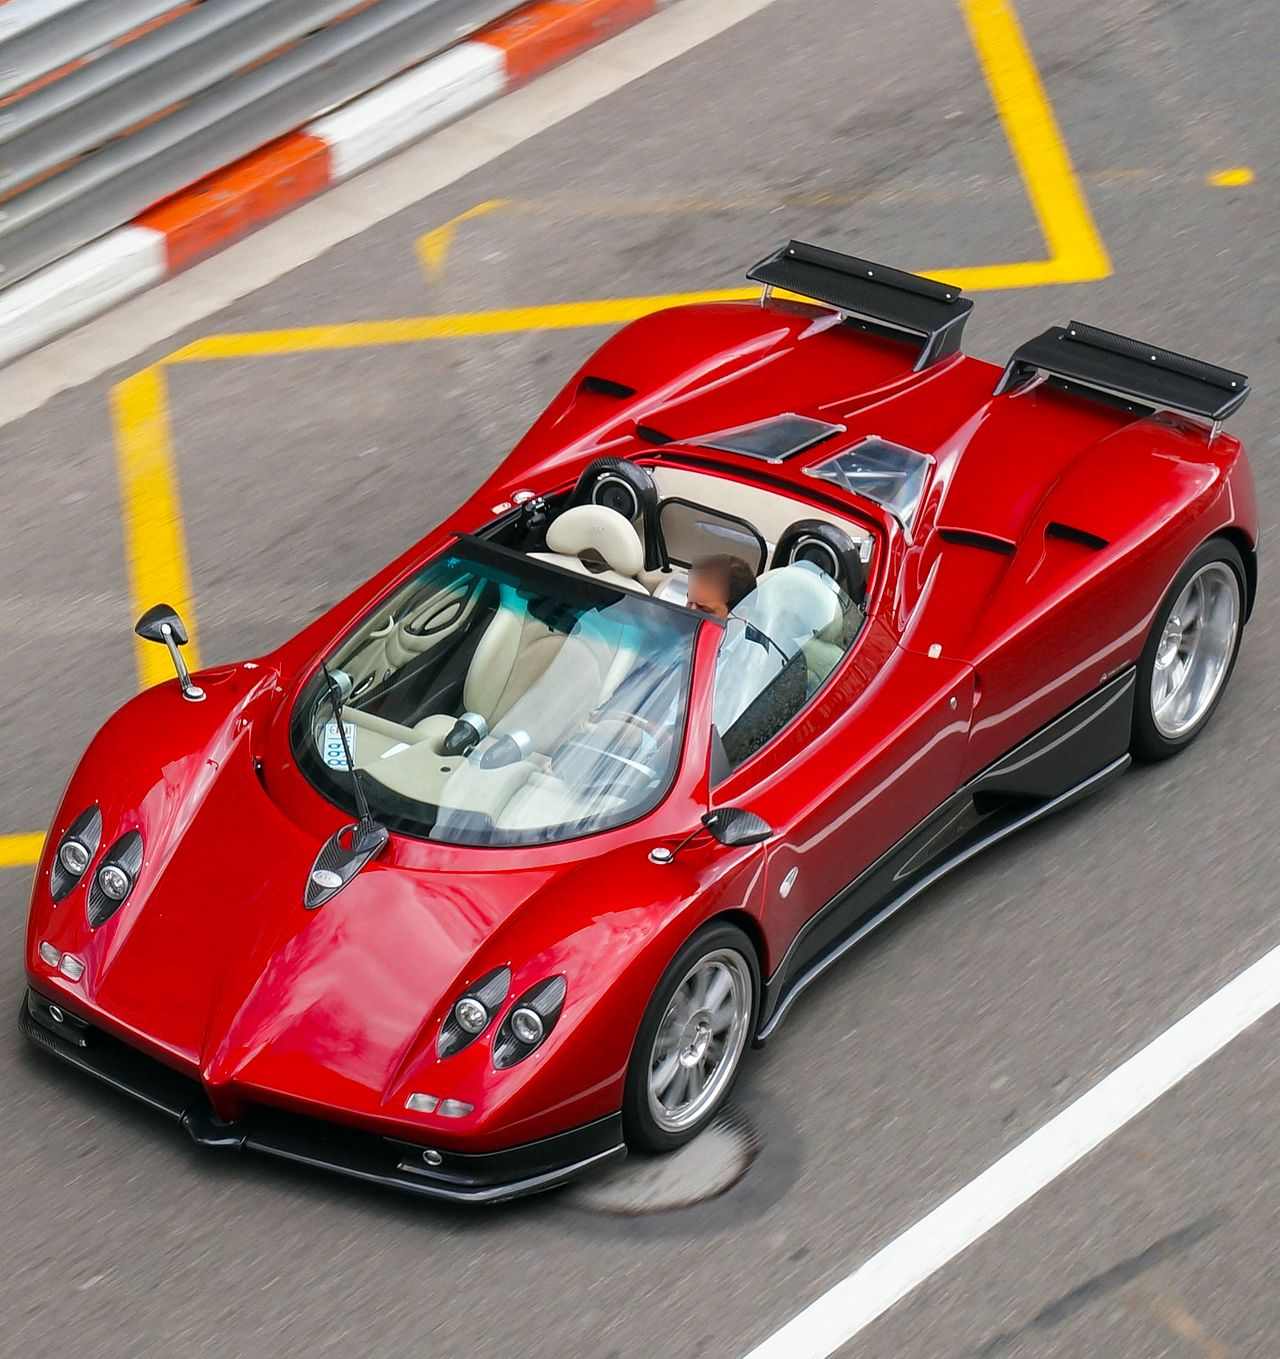 Pagani Zonda, Expensive Sports Cars, Fast